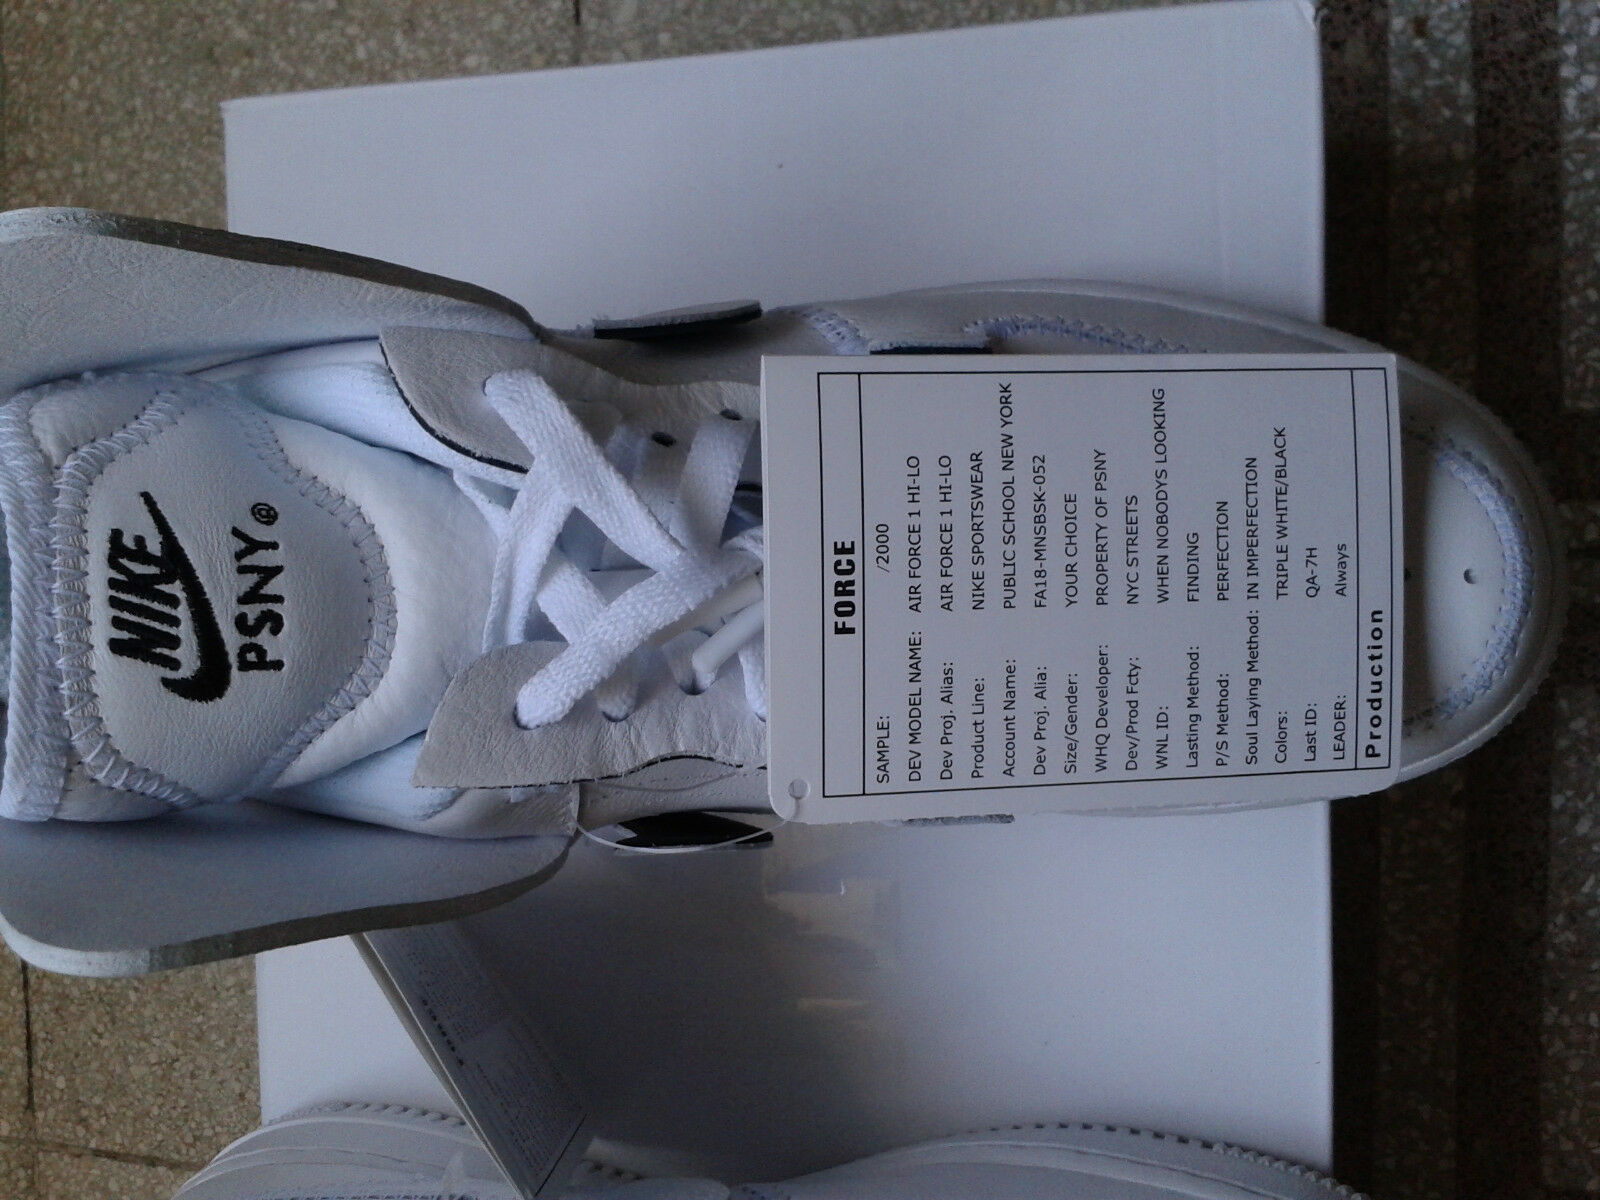 Nike Air Force Force Force 1 PSNY Silver/Sail/White  AO9292-100 US 7 25a777